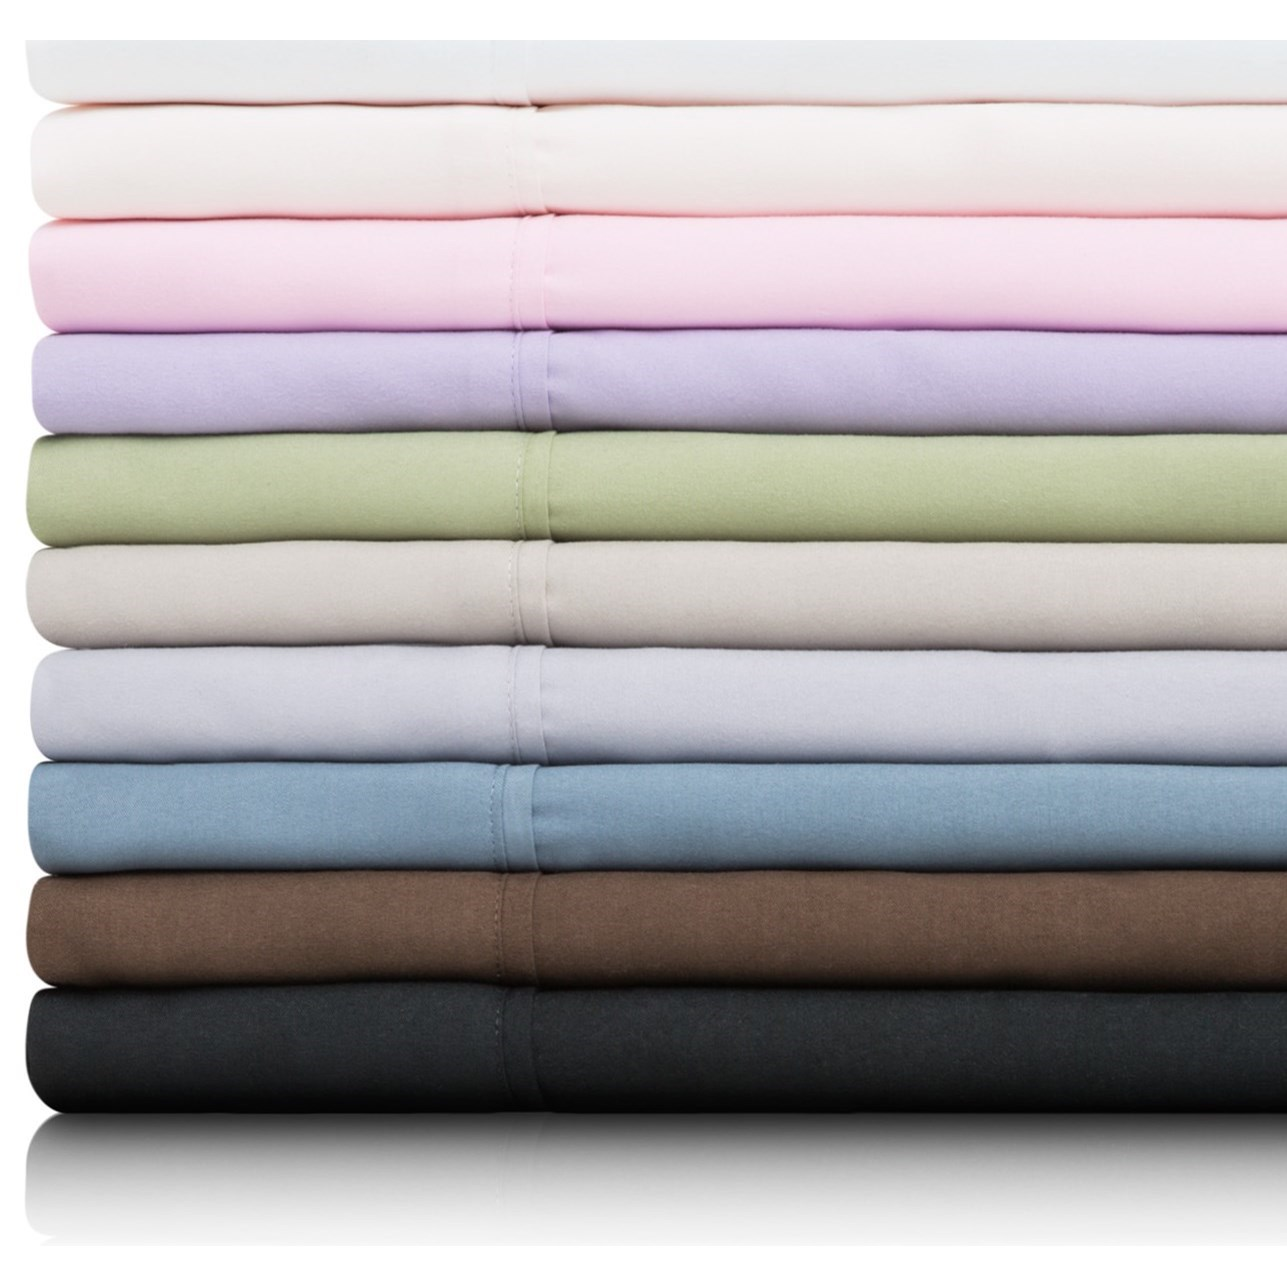 Malouf Brushed Microfiber Queen Woven™ Brushed Microfiber Short Sheet  - Item Number: MA90RQPAMS